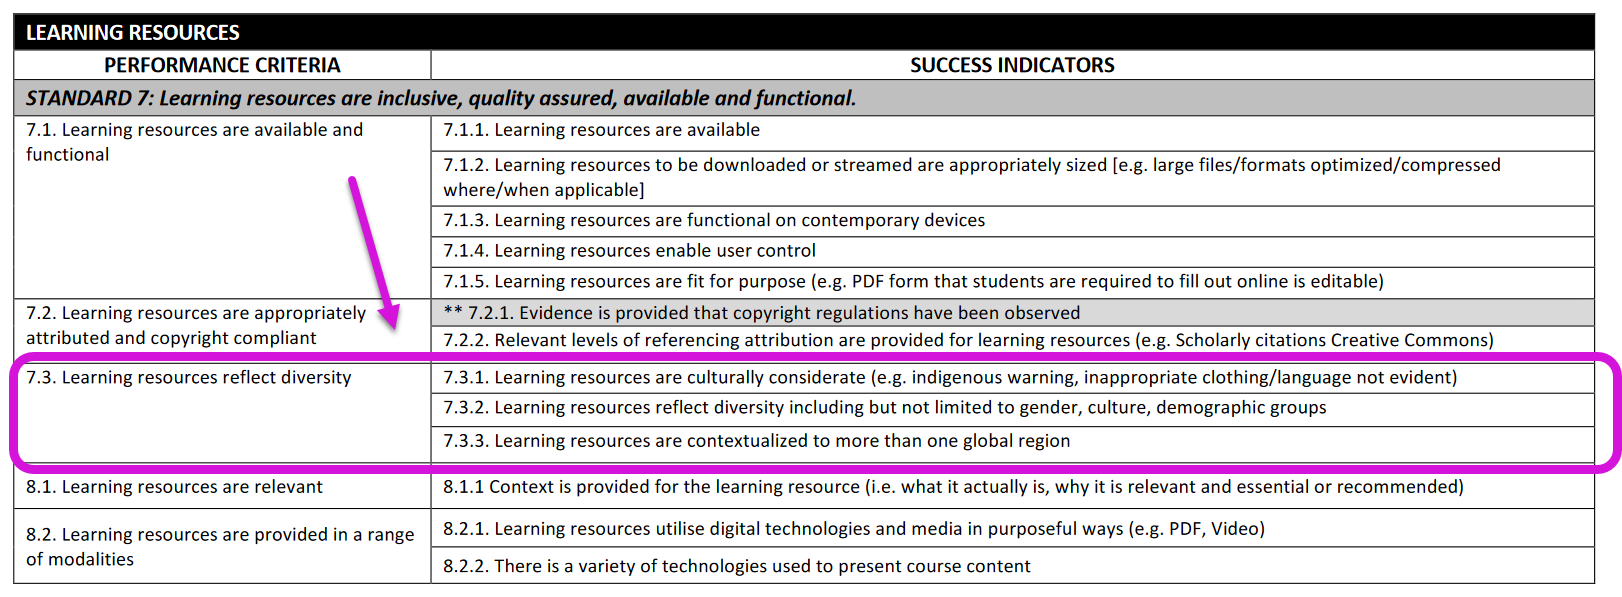 The pictures is an excerpt from the ASCILITE technology-enhanced learning accreditation scheme (standard 7.3) that list 7.3.1 Learning resources are culturally considerate; 7.3.2 Learning resources reflect diversity including but not limited to gender, culture, demographic groups, and 7.3.3 Learning Resources are contextualized to more than one global region.